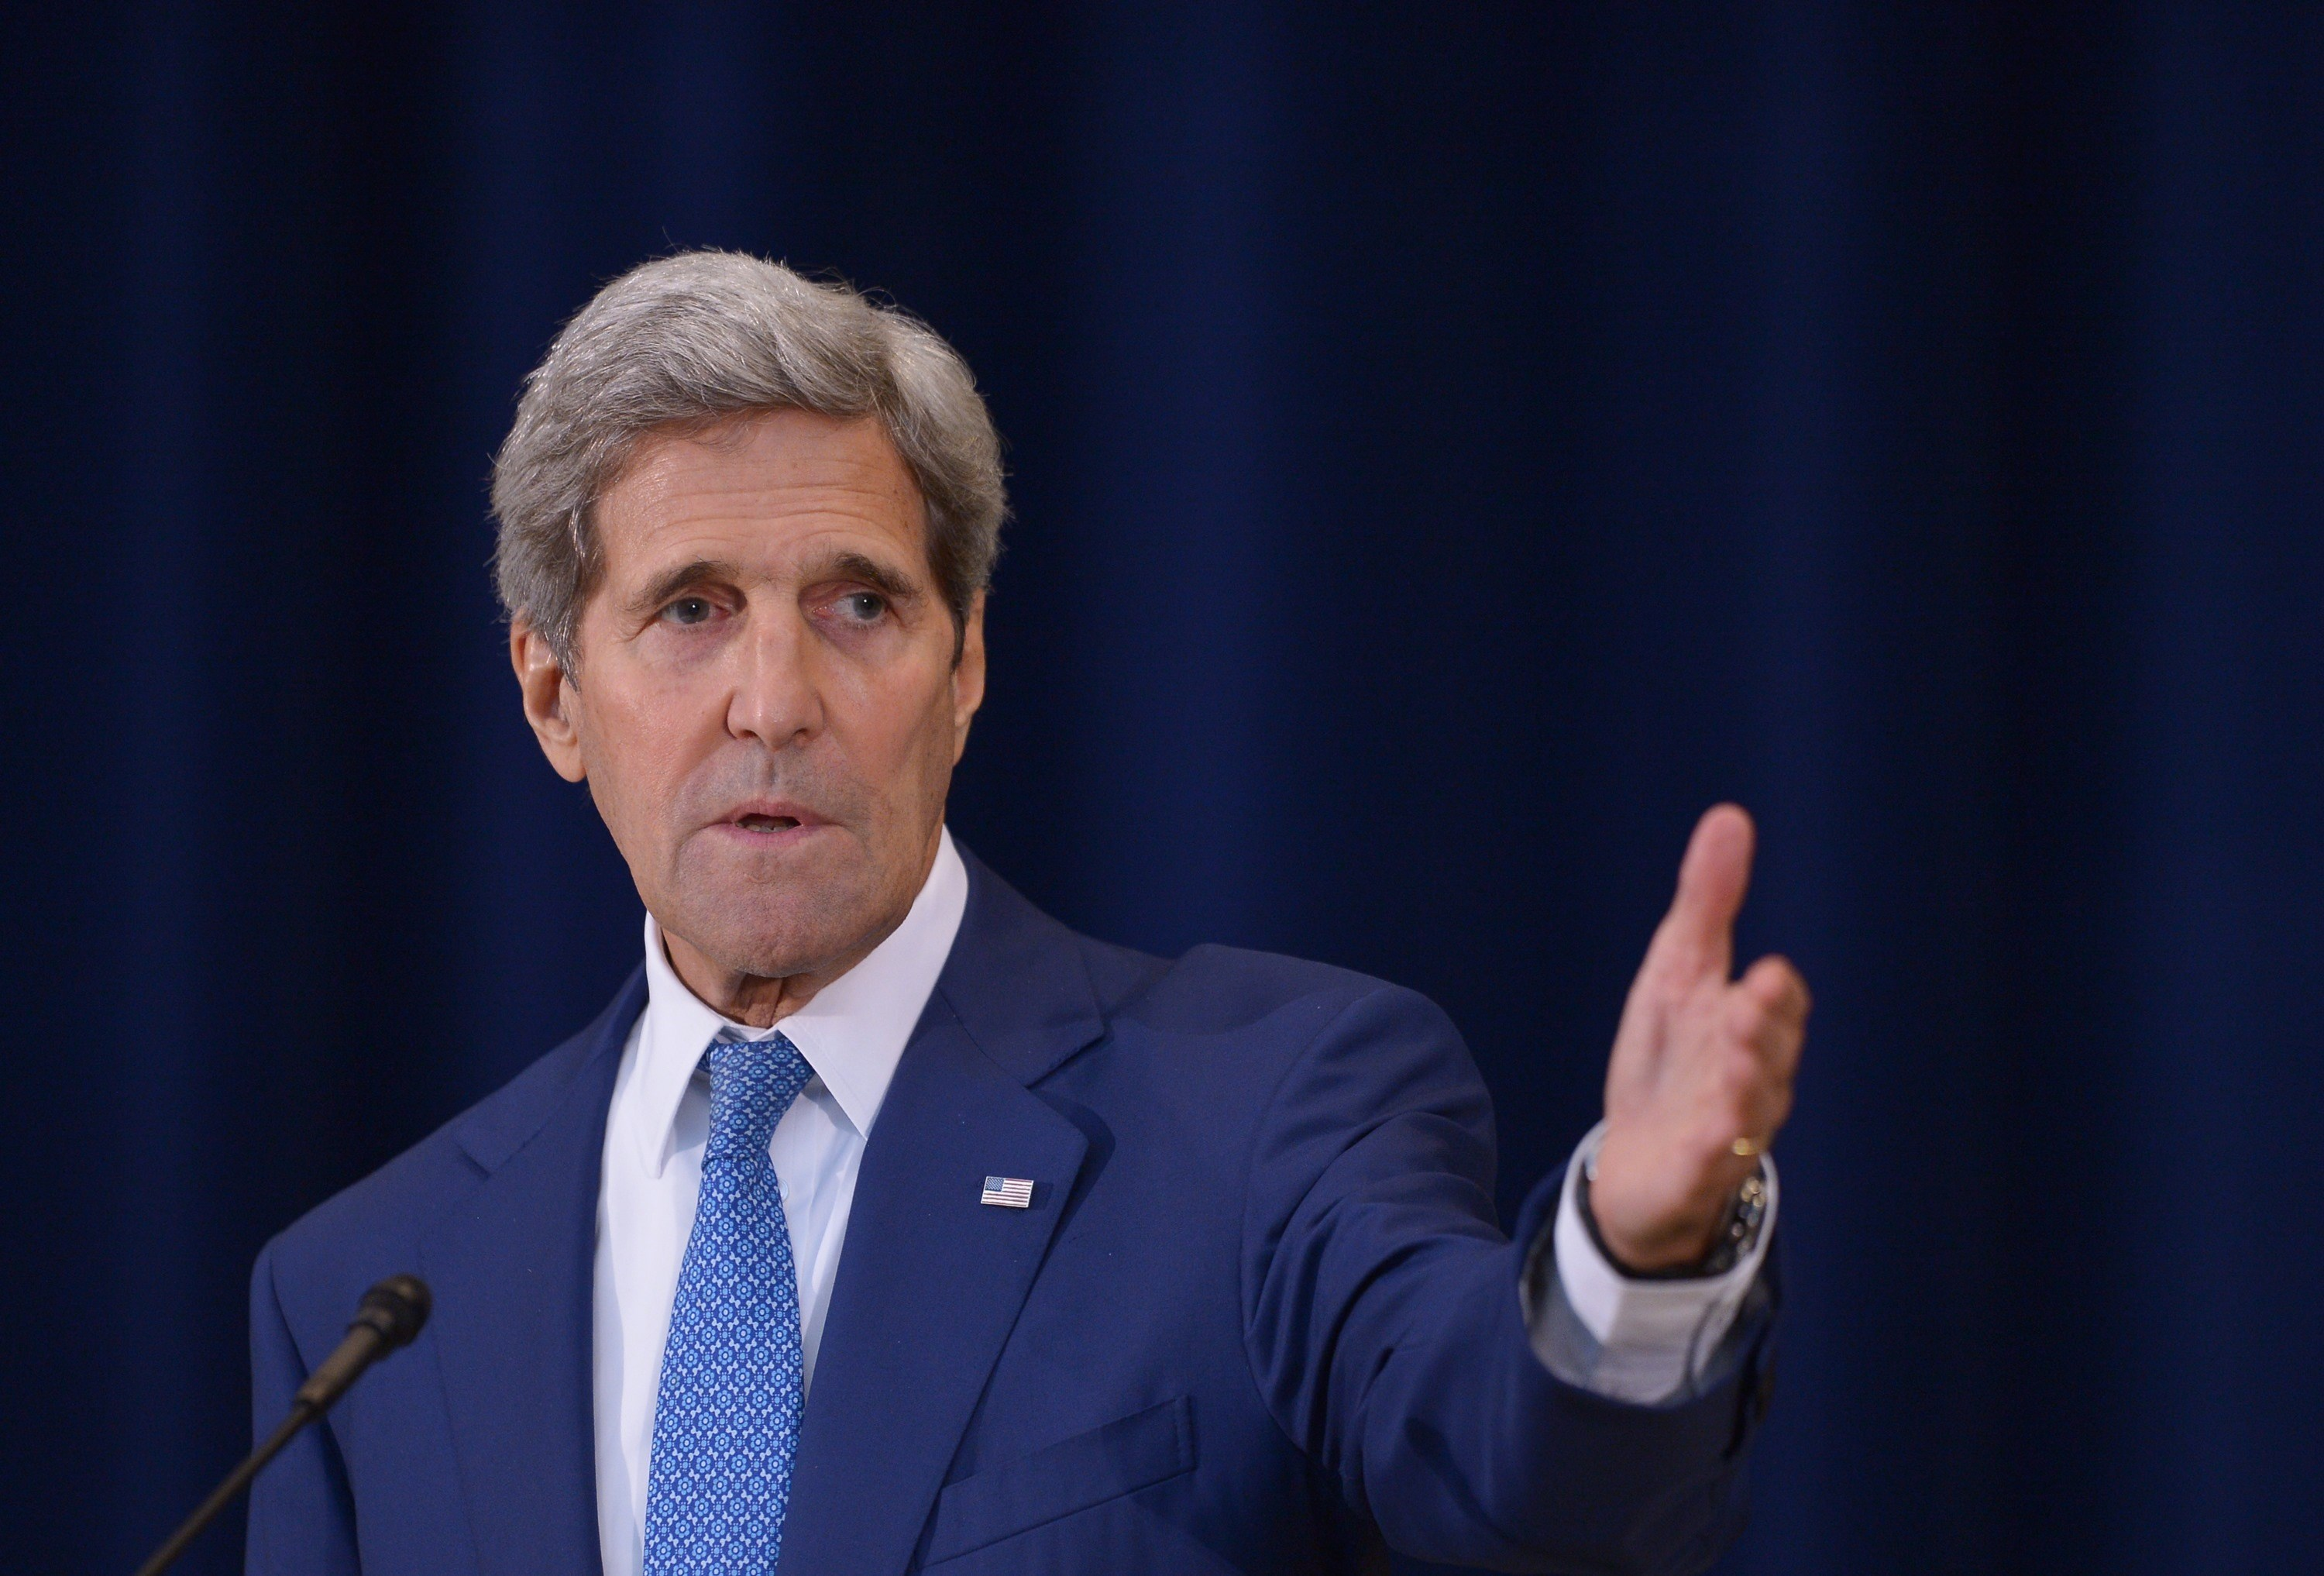 US Secretary of State John Kerry speaks during the release of  the 2015 Trafficking in Persons Report  on July 27, 2015 at the State Department in Washington, DC.